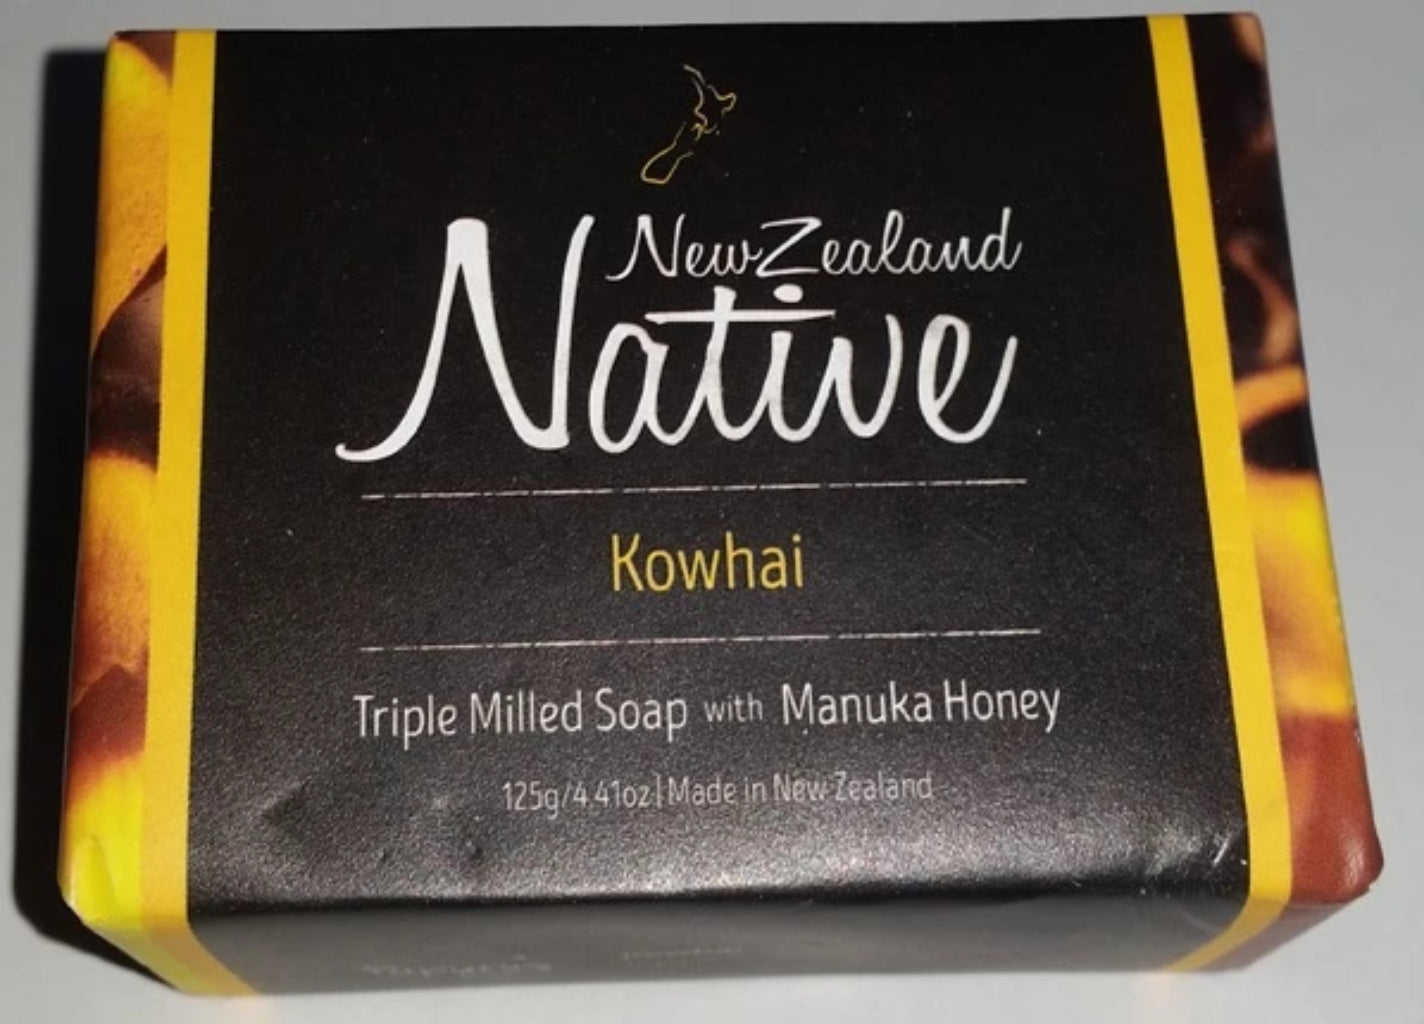 New Zealand Native Kowhai Soap - Face & Body | Papyrus Essential Luxuries